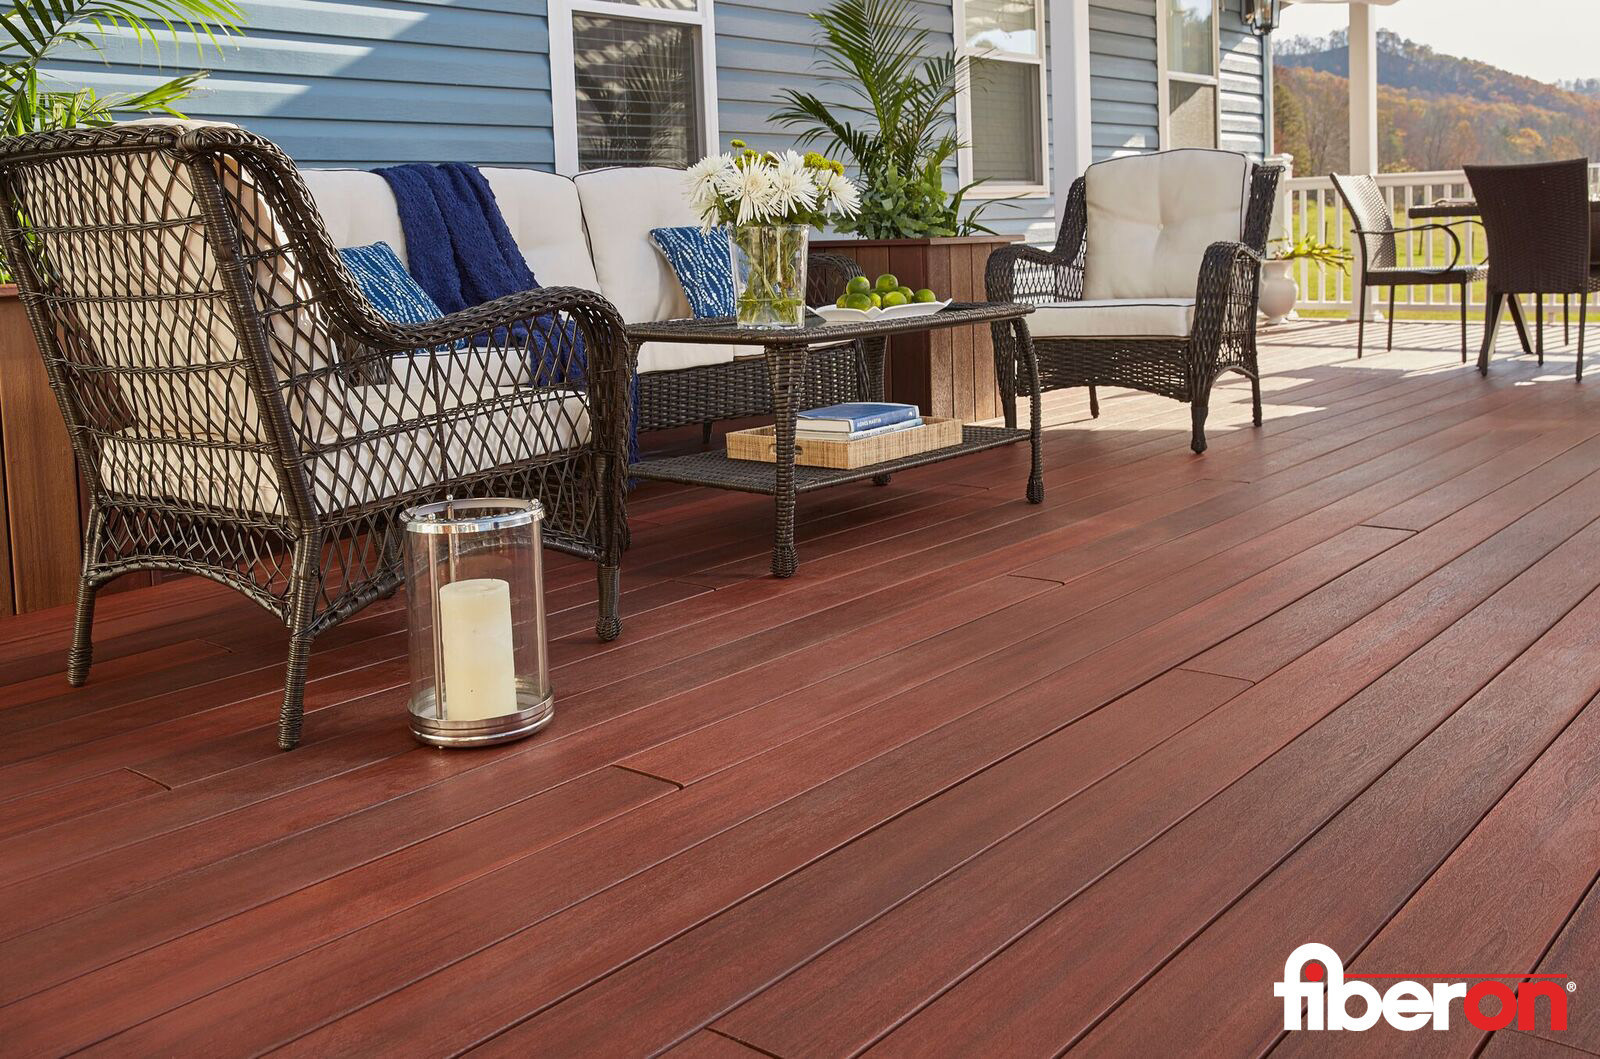 Fiberon Symmetry Decking Featured On Hit Hgtv Series